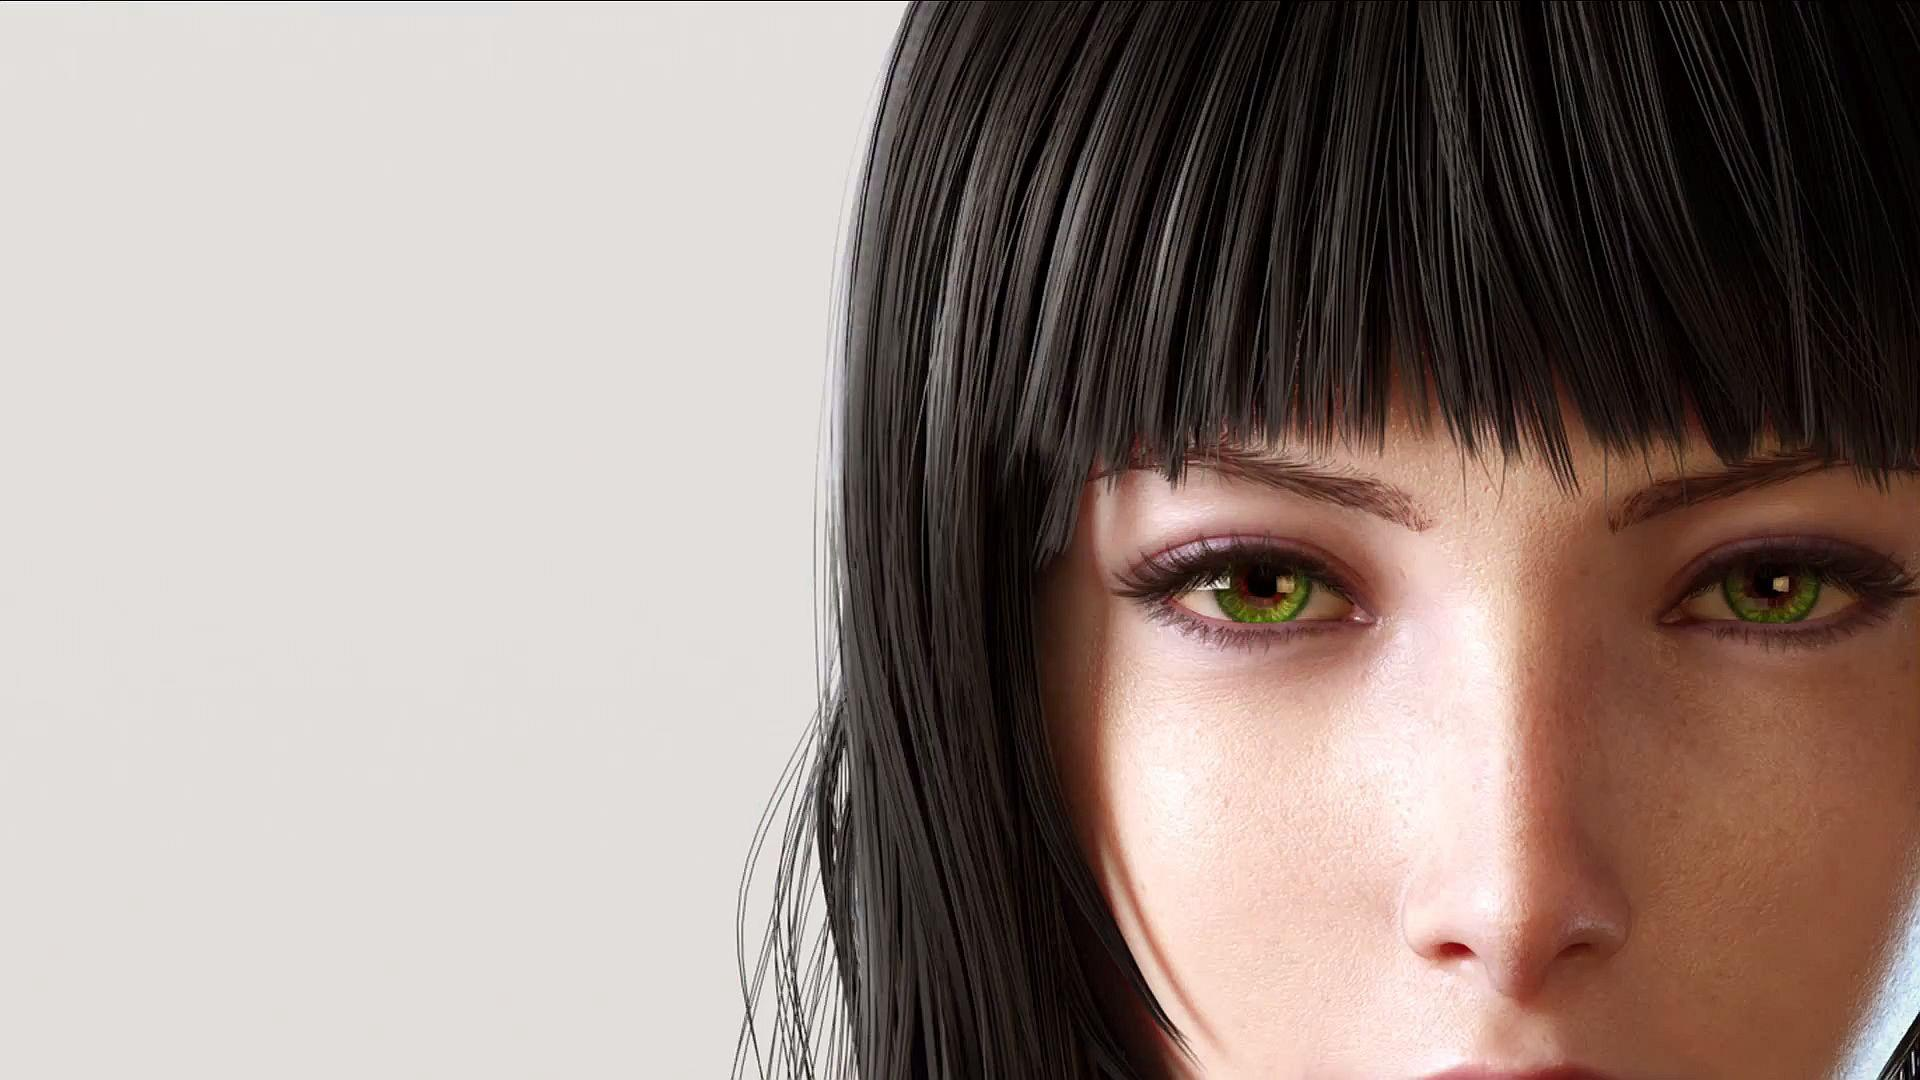 Girl from final fantasy xv Wallpapers